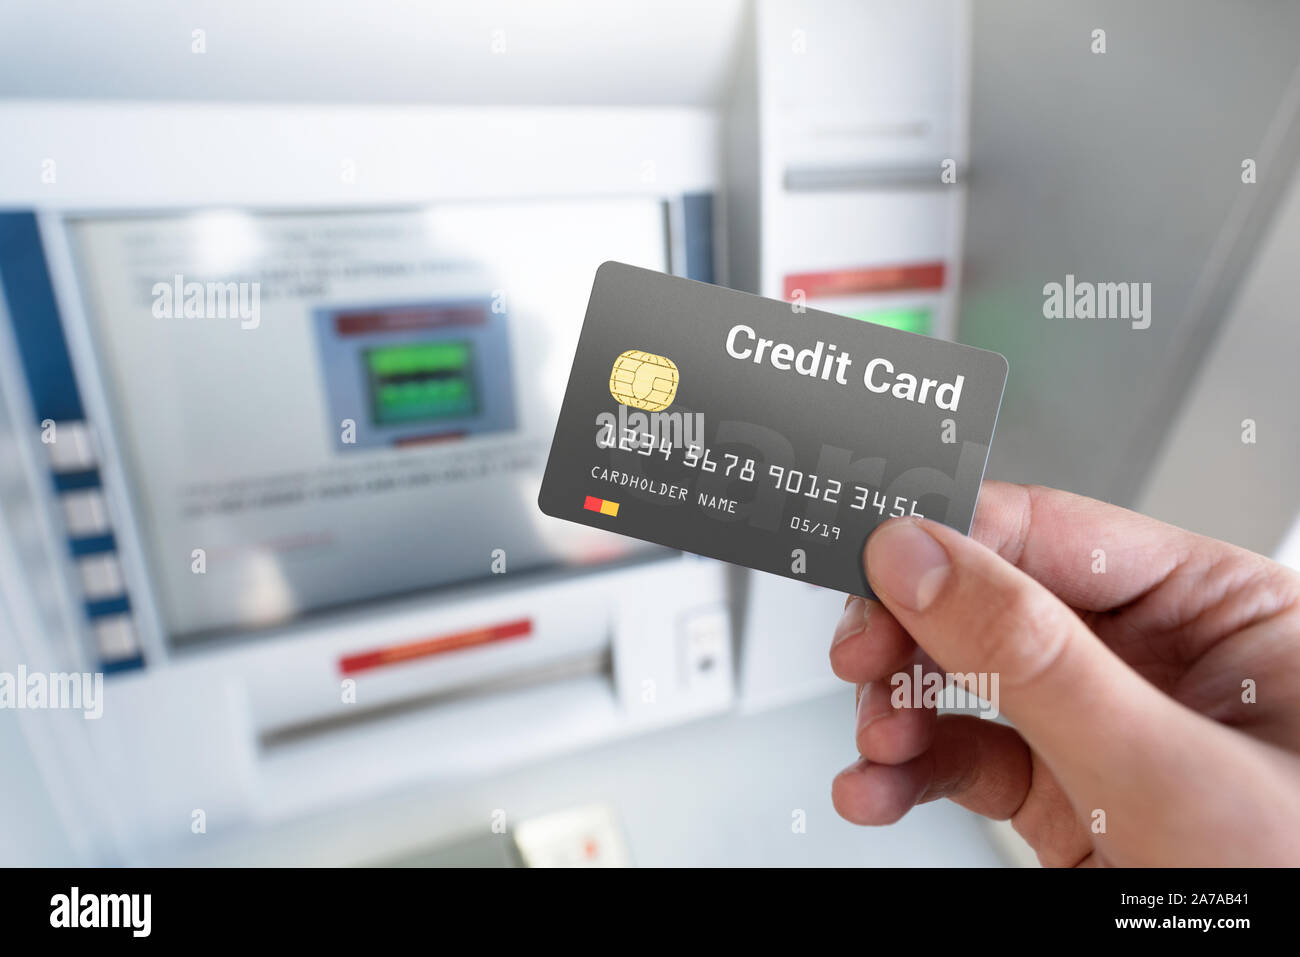 Withdraw money from an ATM using a credit card. Credit card close